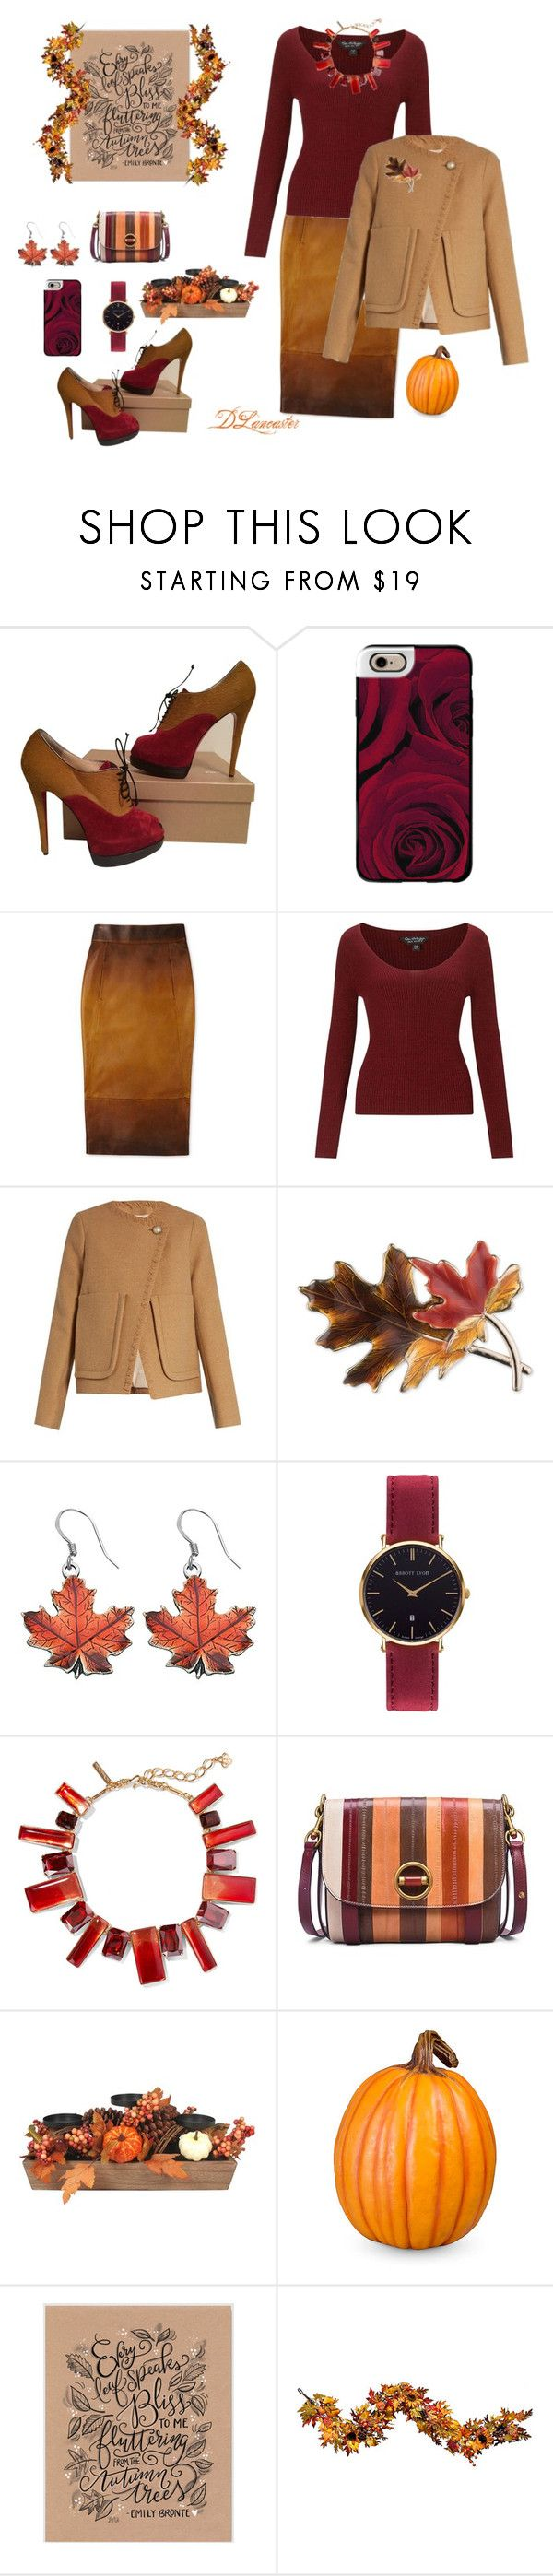 """Pumpkins, pumpkins, everywhere!!"" by diane-711 ❤ liked on Polyvore featuring Christian Louboutin, Casetify, Miss Selfridge, See by Chloé, Anne Klein, Abbott Lyon, Oscar de la Renta, Tory Burch and Improvements"